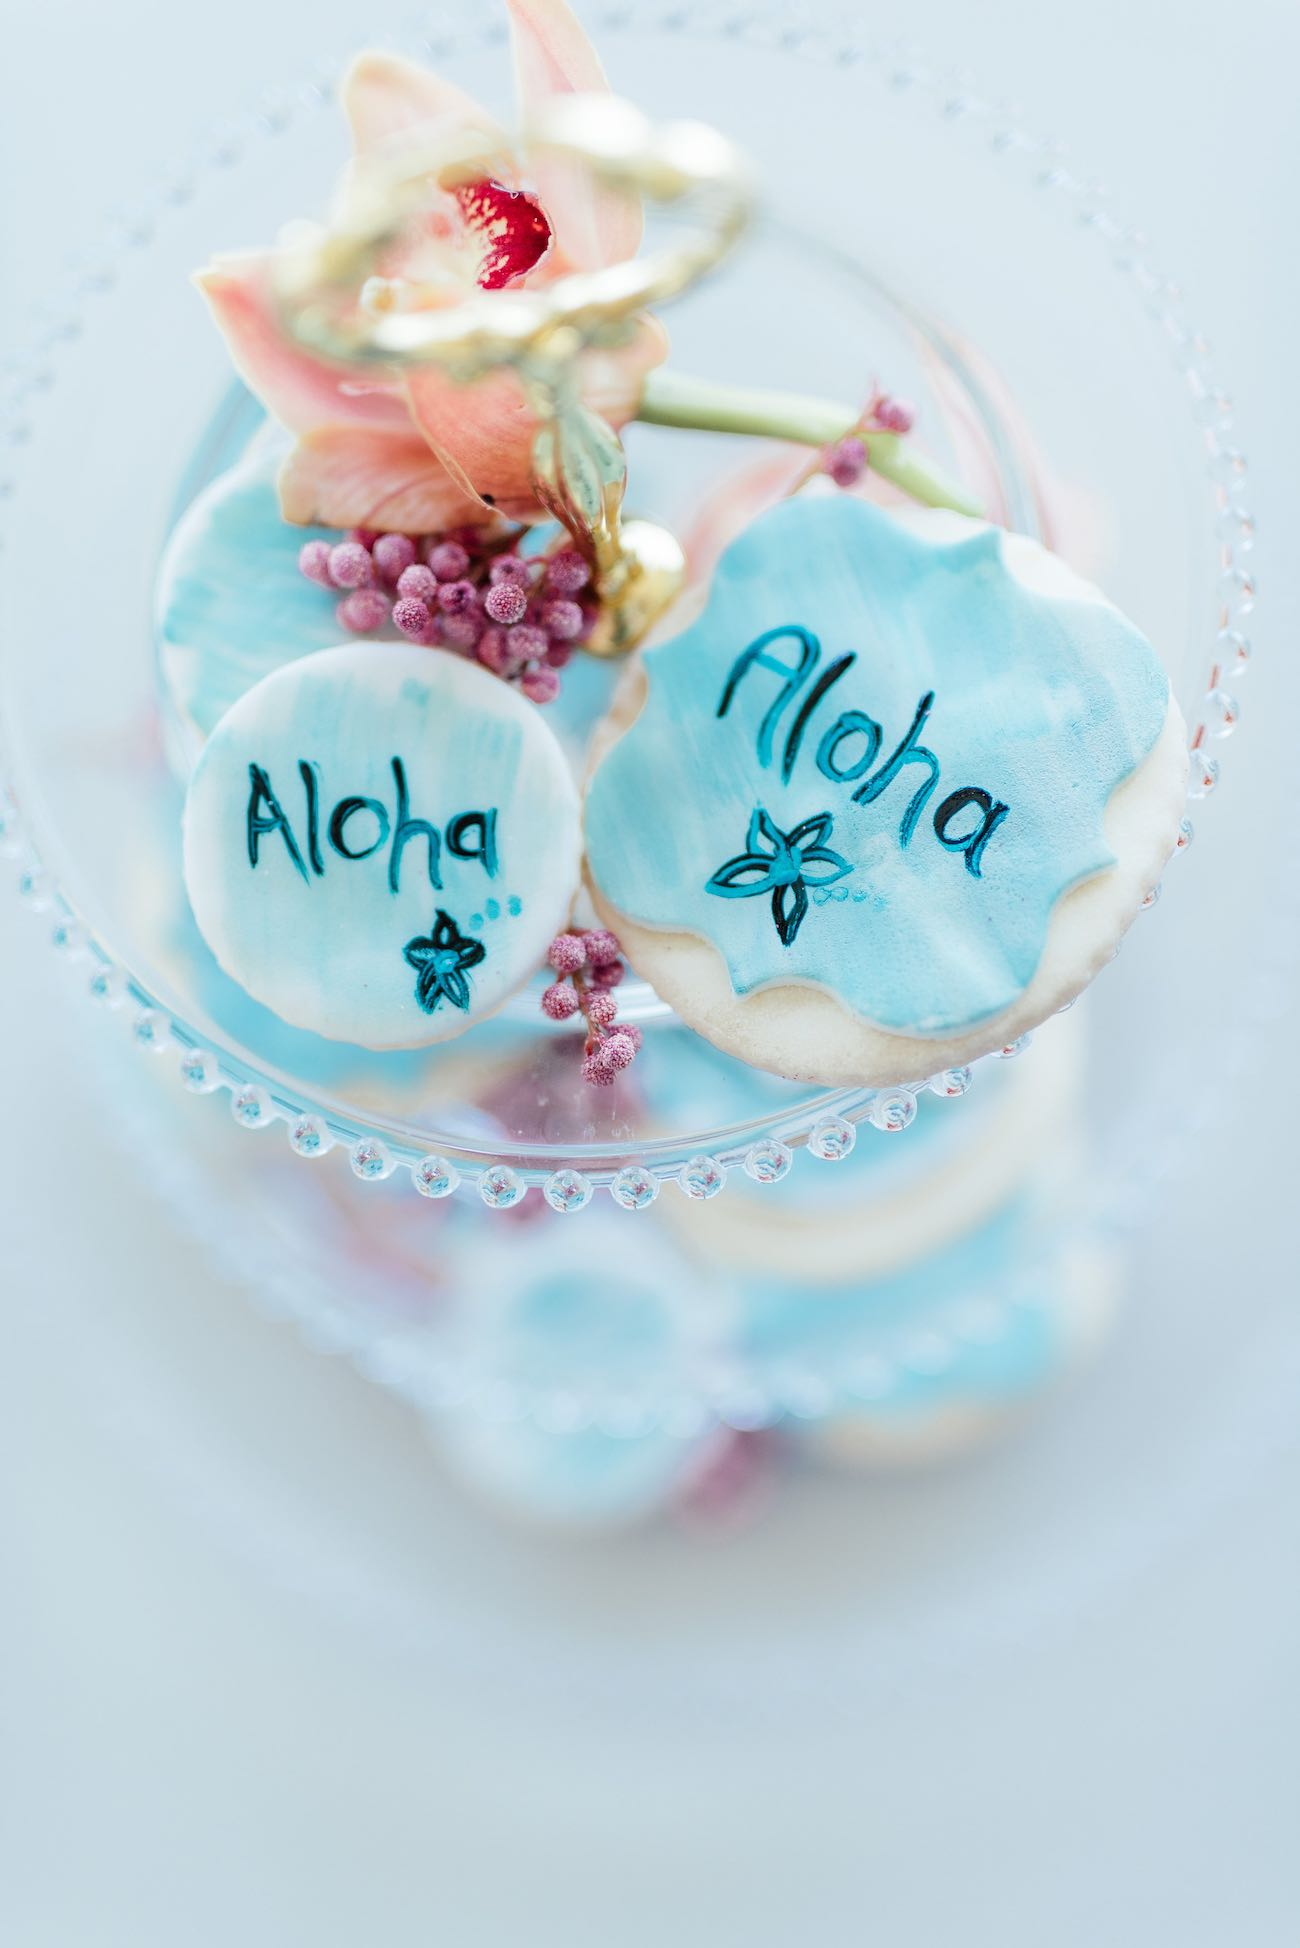 Aloha! Hand painted biscuit wedding favors for a pastel mint tropical wedding. Click for the most absolutely gorgeous Tropical Wedding ideas ever!